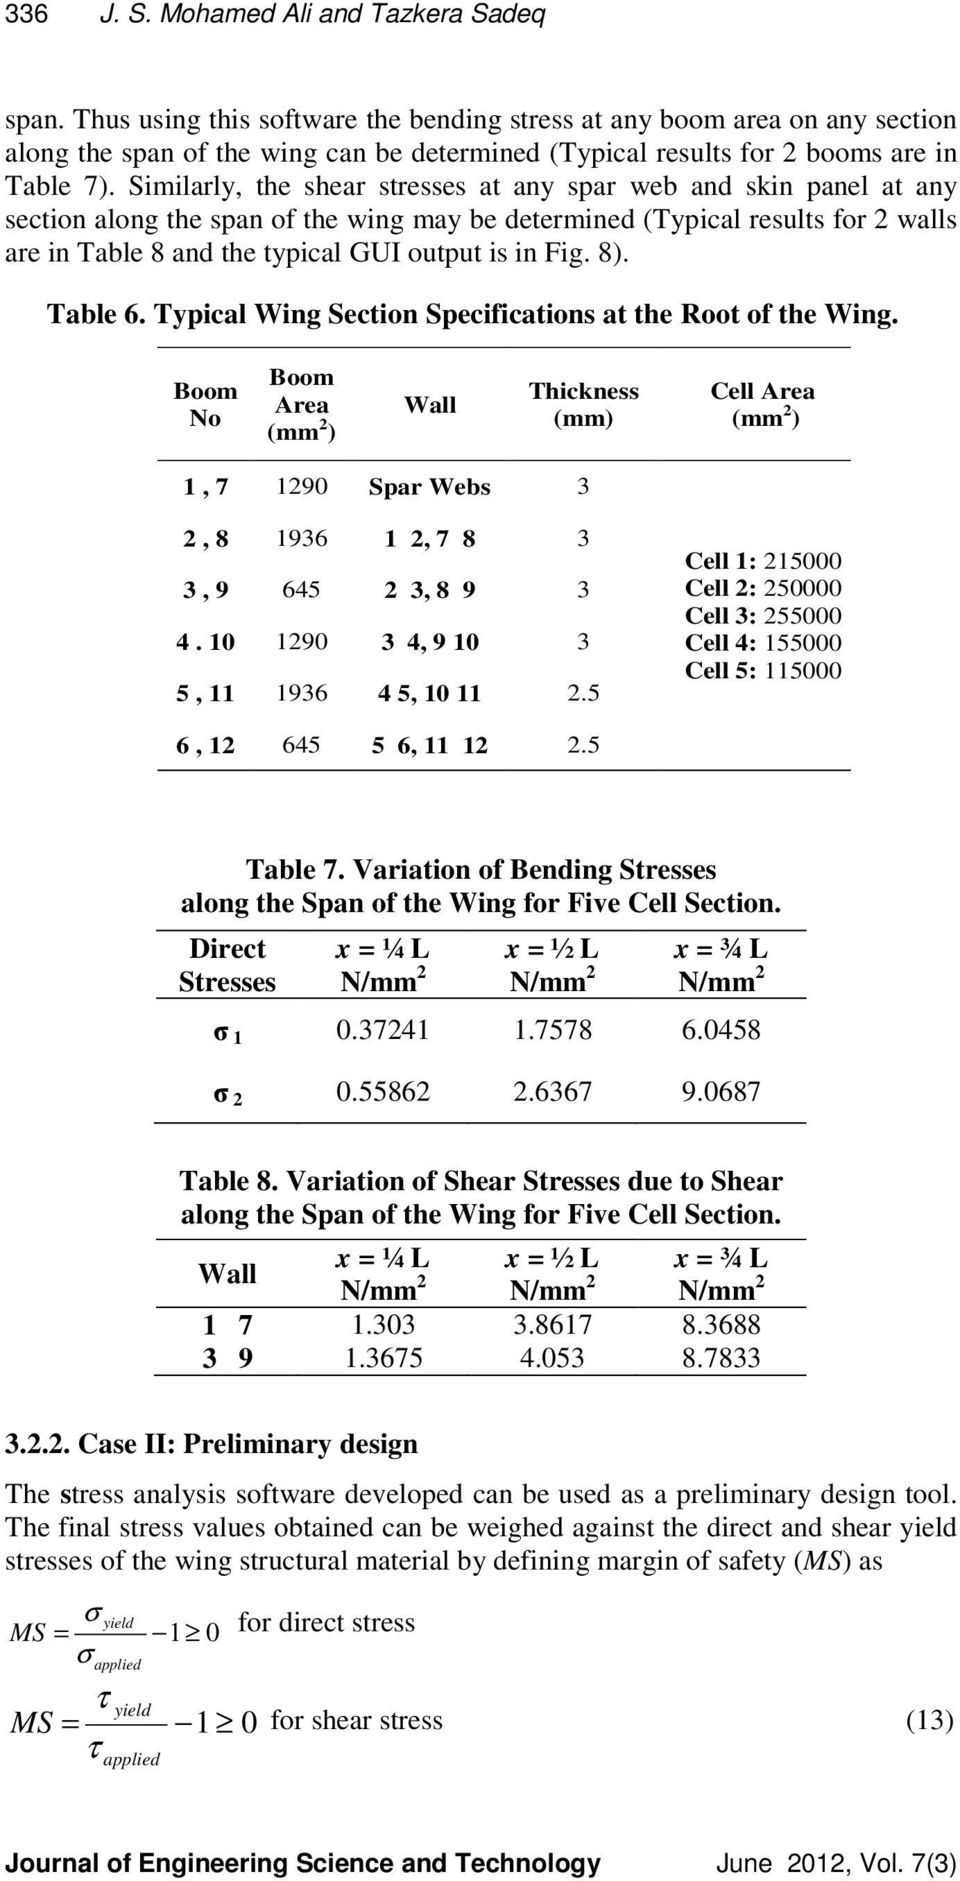 Development Of Educational Software For Stress Analysis An Shearing Force And Bending Moment Diagram Aircraft Wing Problem Similarly The Shear Stresses At Any Spar Web Skin Panel Section Along